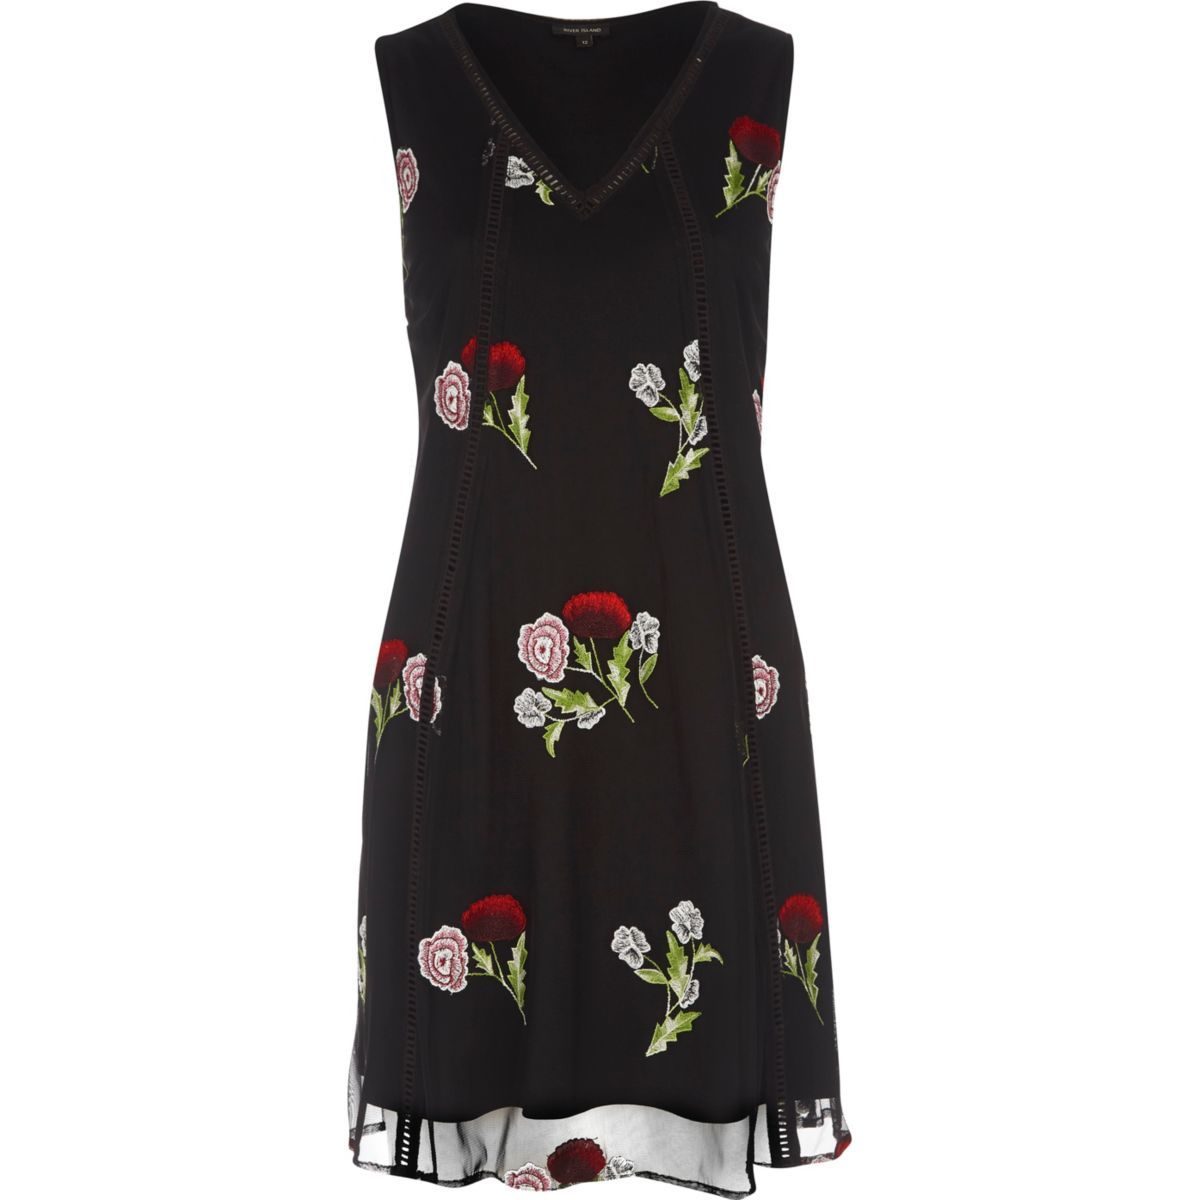 Black mesh floral embroidered mini dress